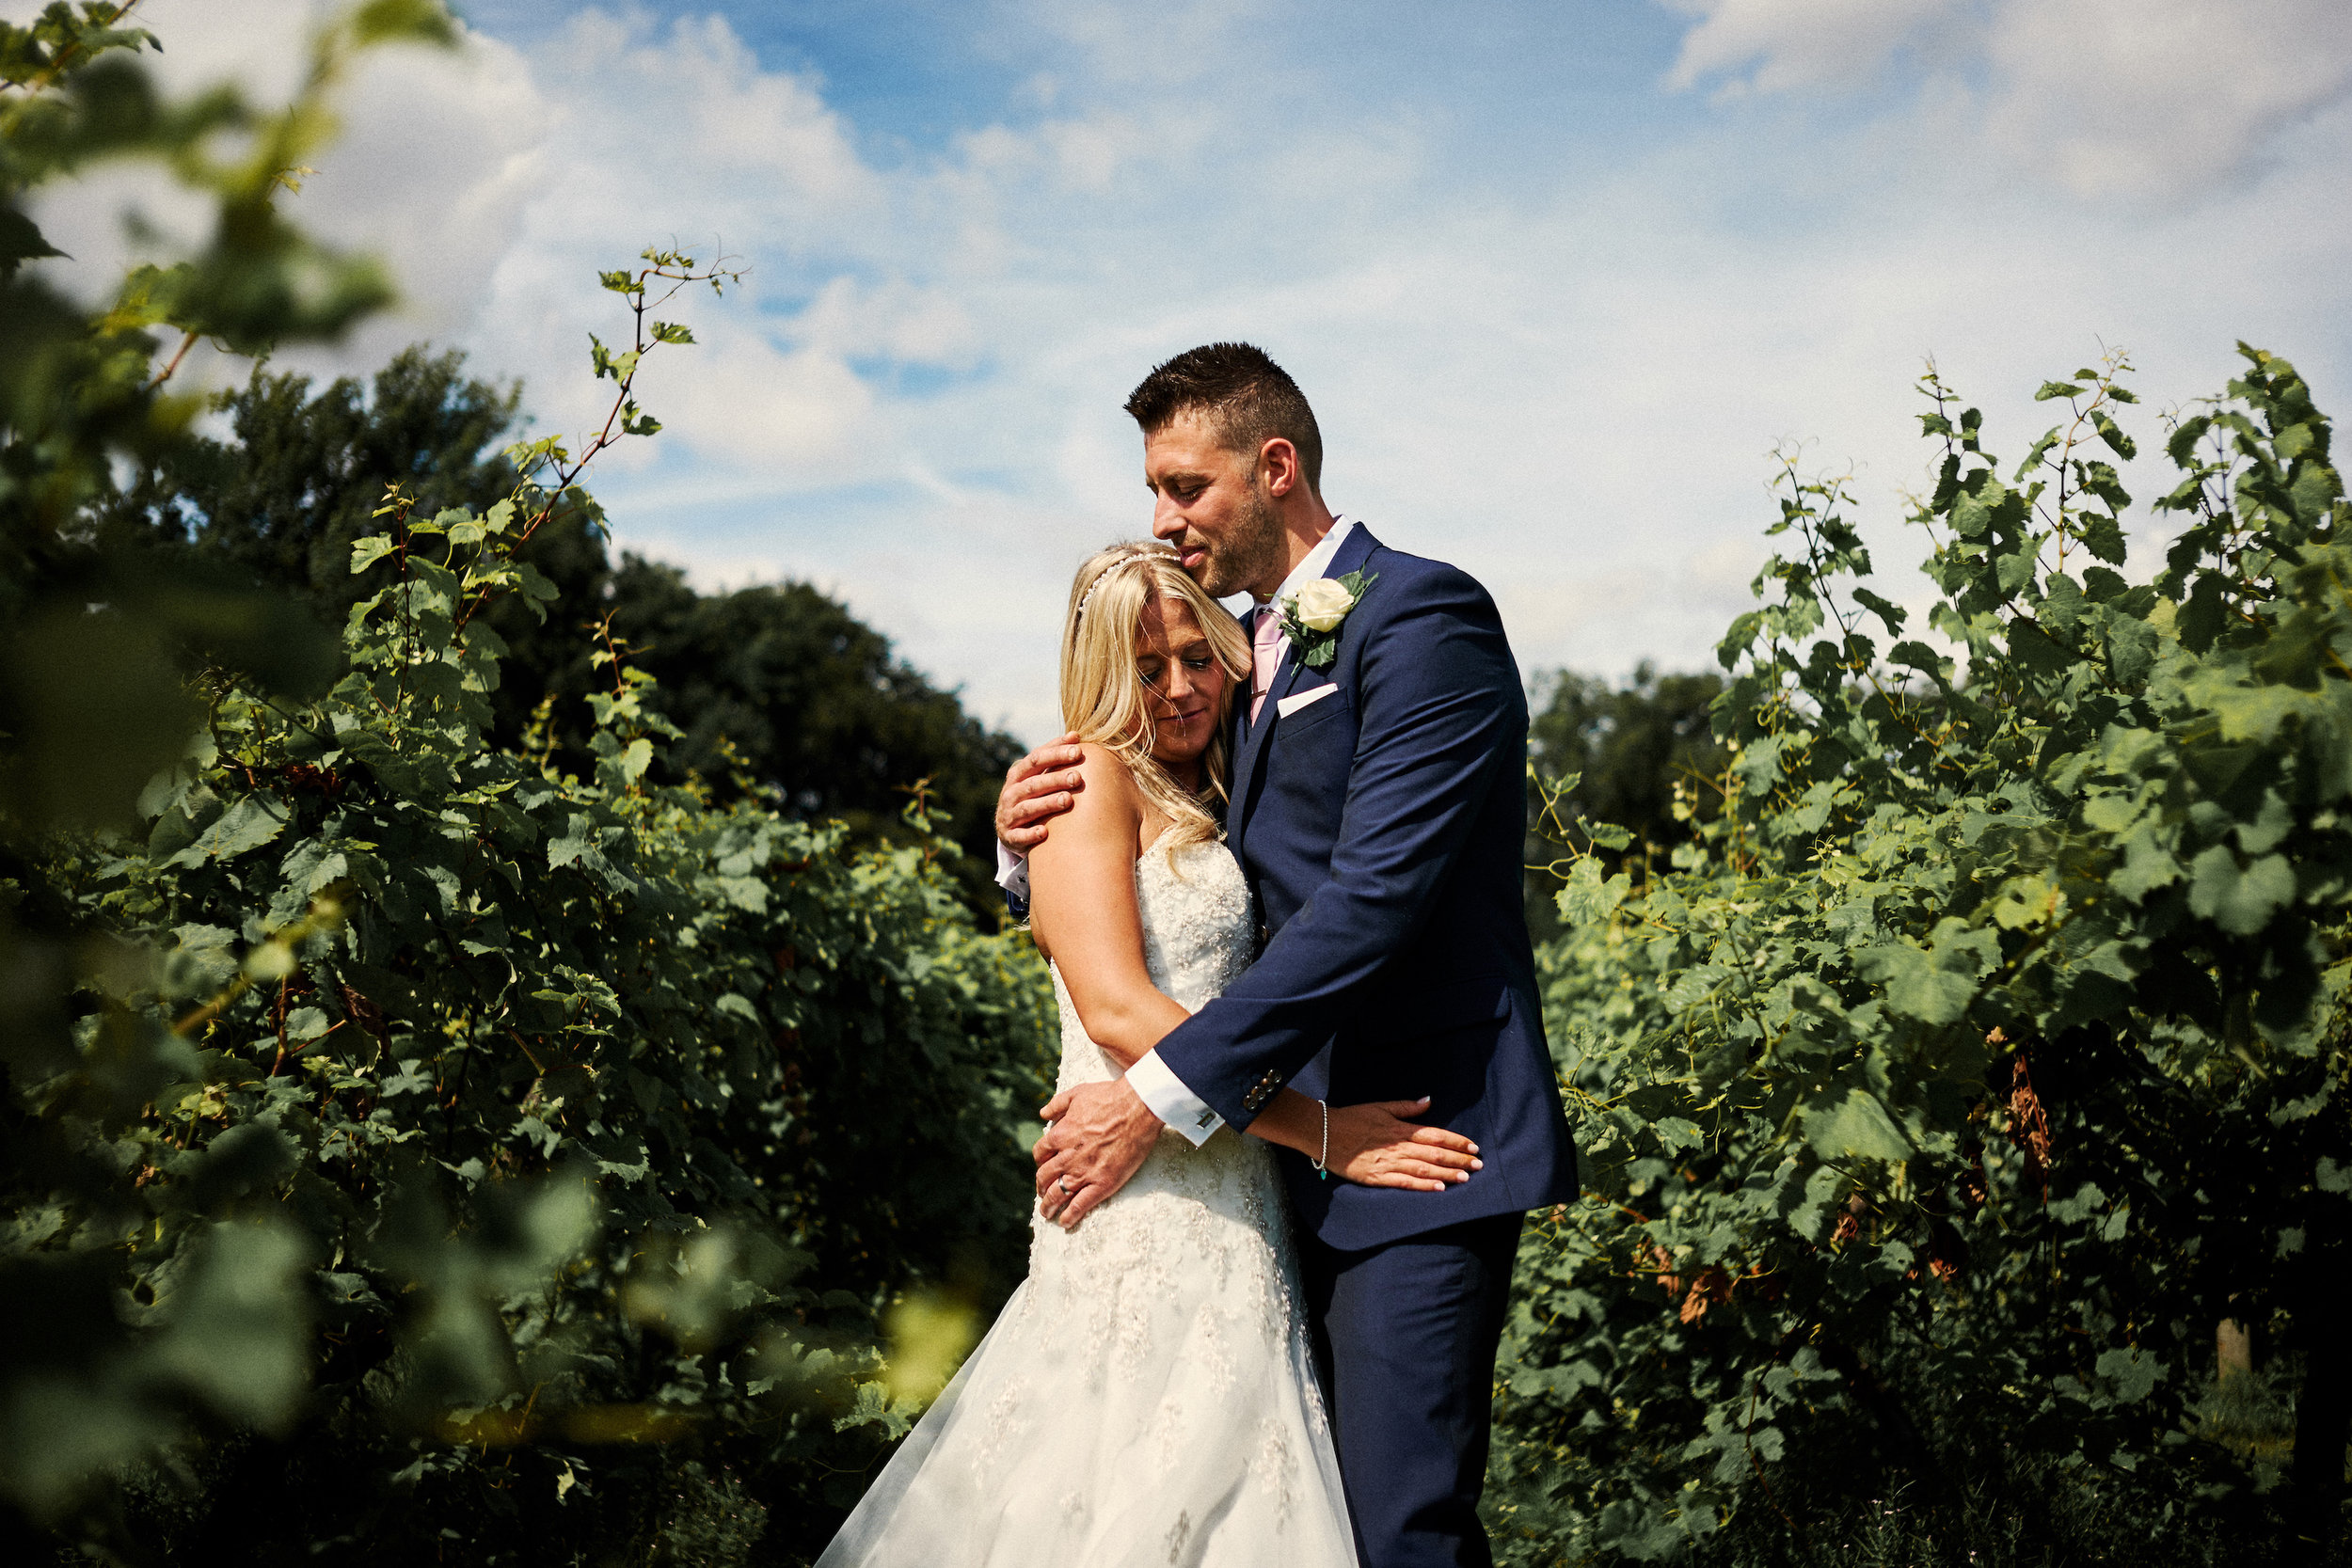 Wedding Photography - When it comes to your wedding day, it's safe to say you're going to want to remember it for the rest of your life. Every emotion felt, every eruption of laughter, the gasp as you begin to walk the aisle…and the only way to do that is with quality wedding photography.